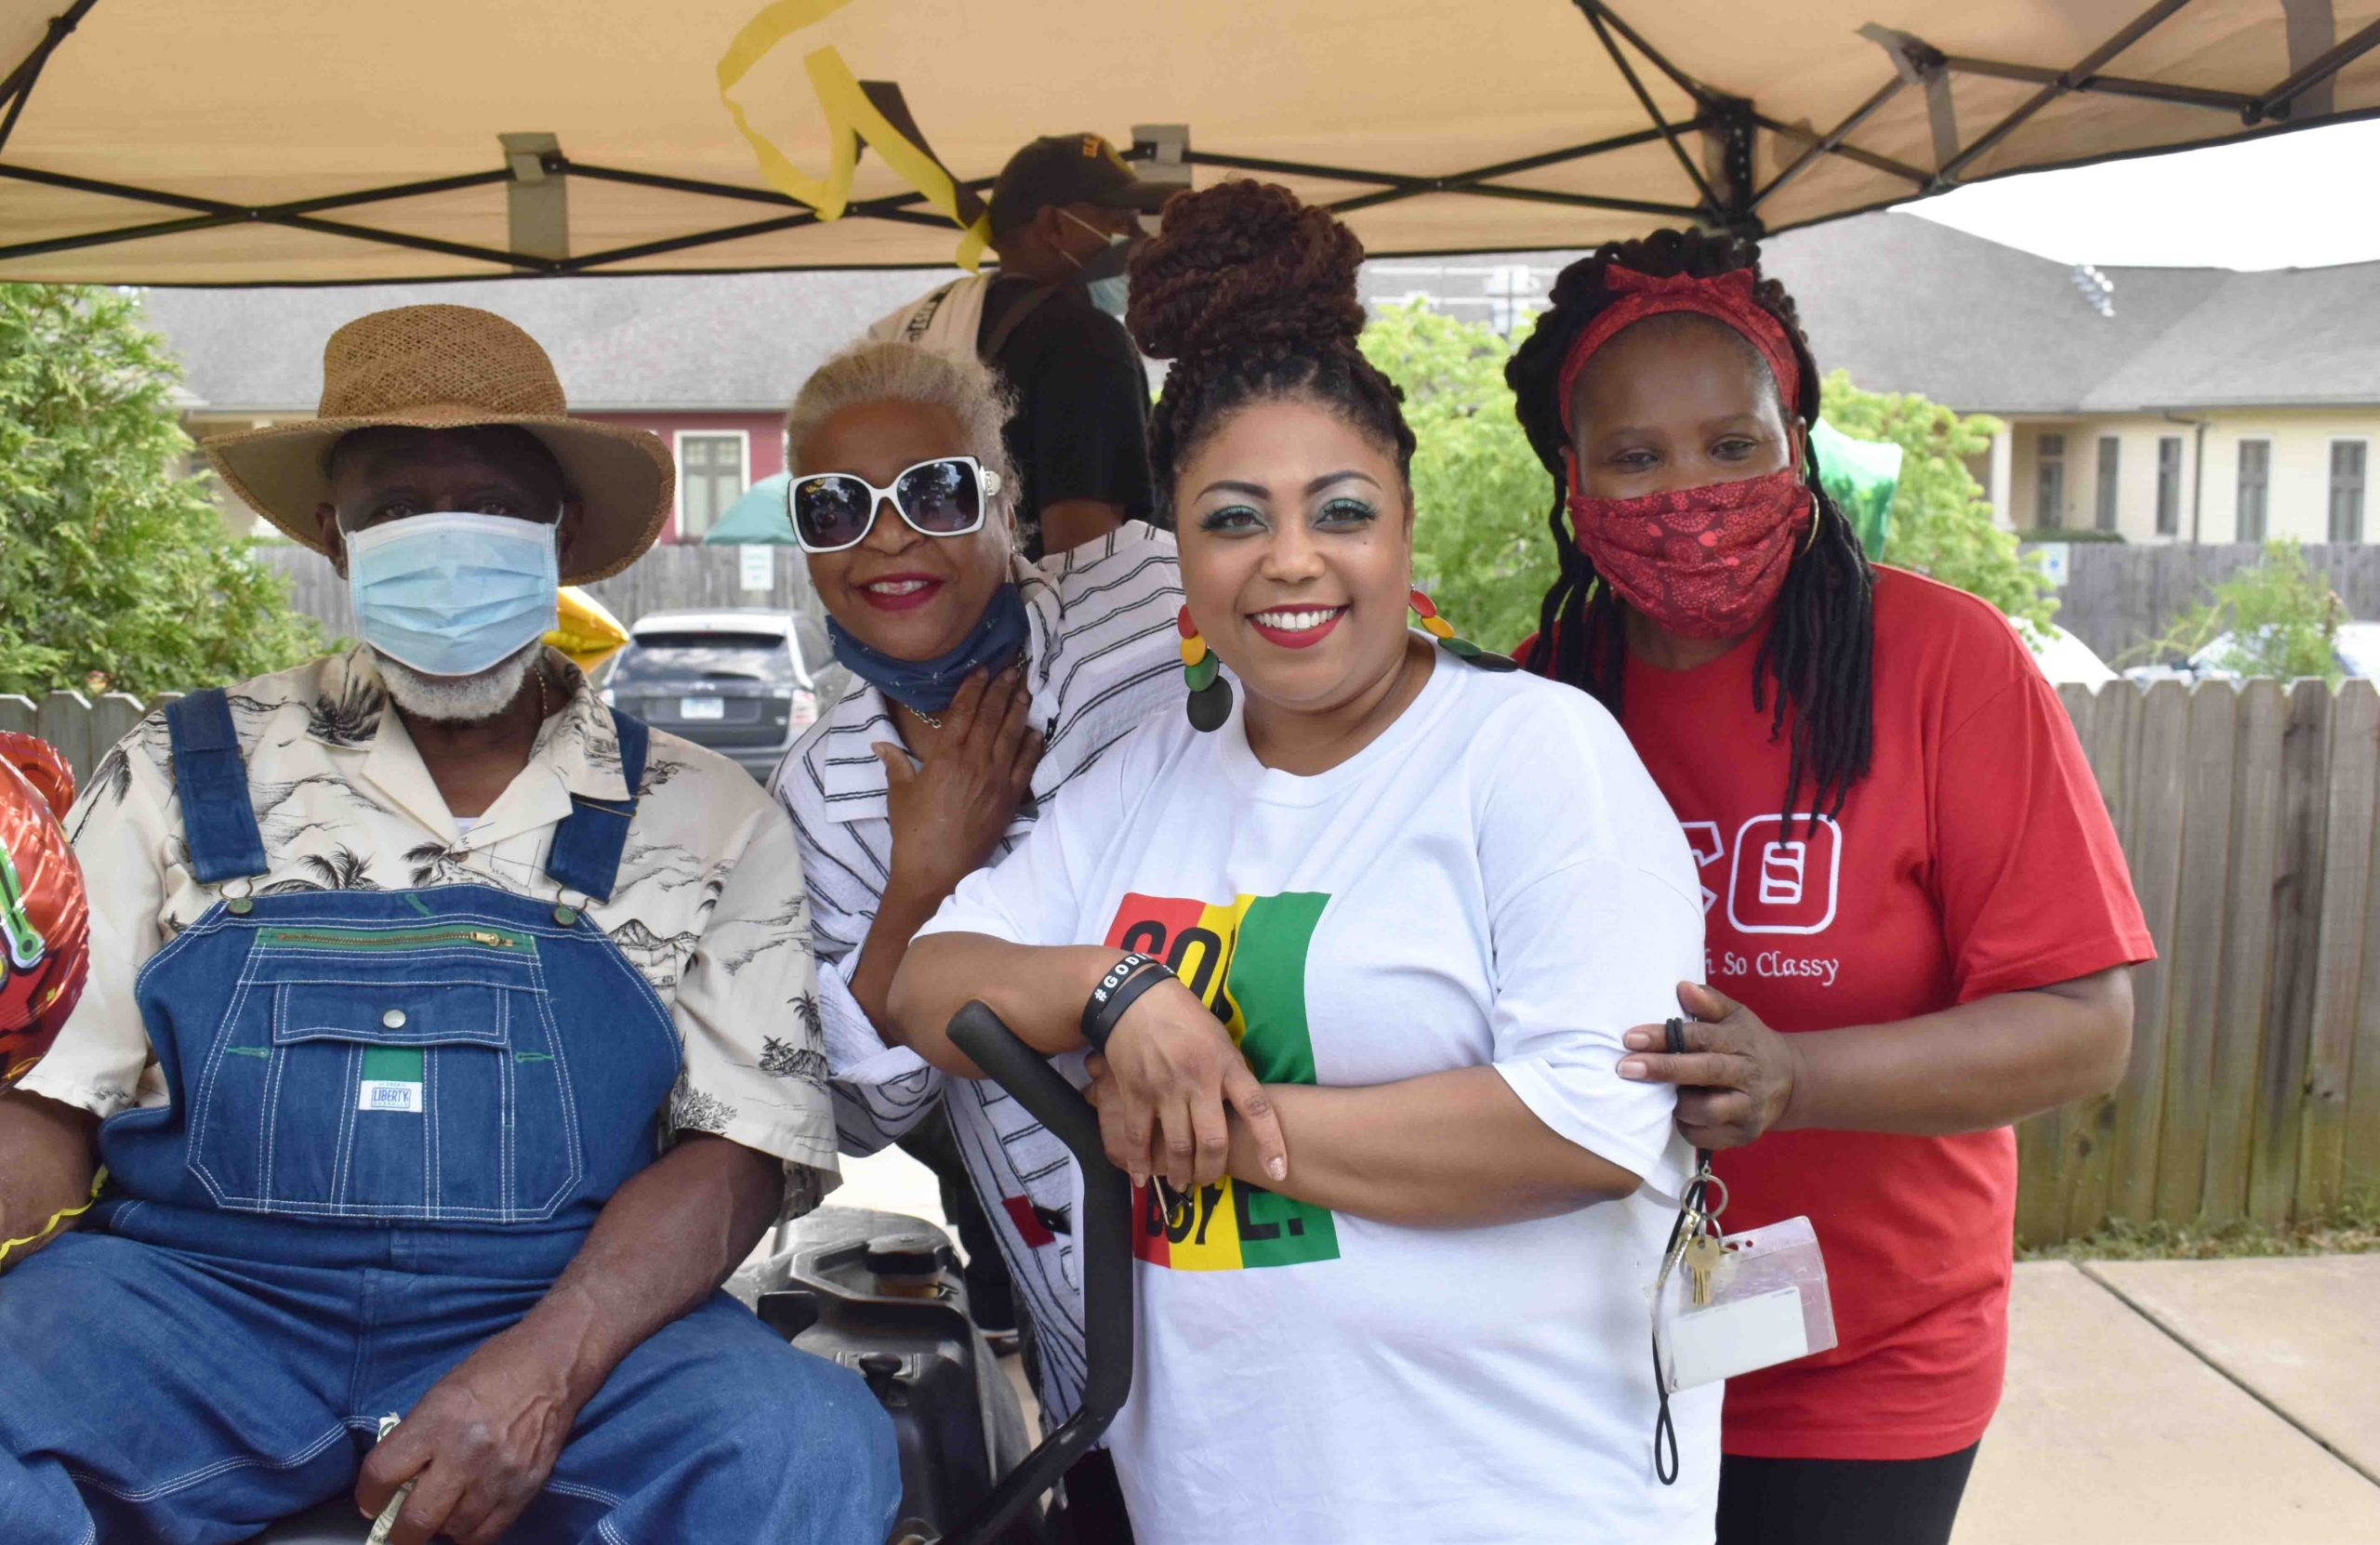 Rev. Dr. William 'Paw Paw' Robinson, Jr., Dr. Laureen Isom, Tori Robinson-Pippens, Jeanette Donald